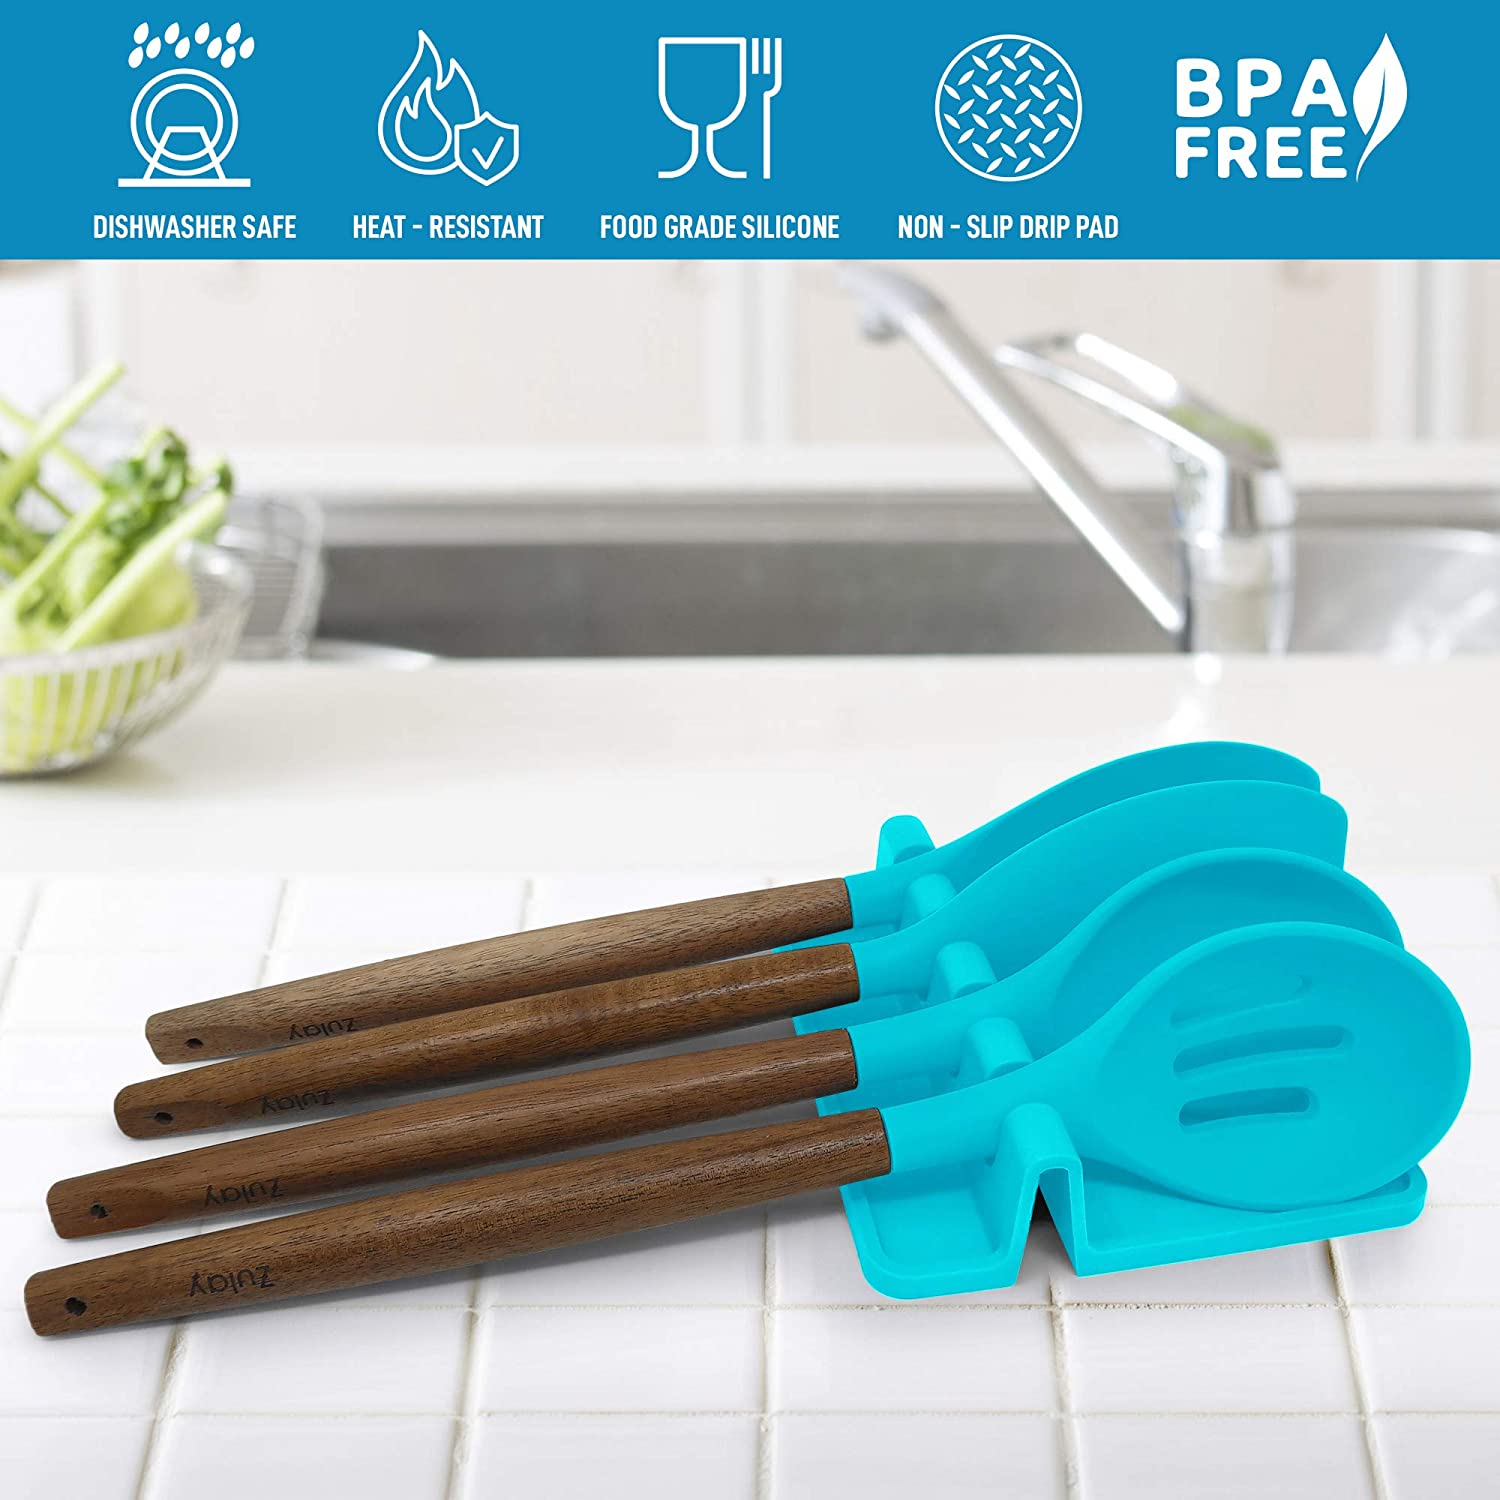 BPA-Free Spoon Rest /& Spoon Holder for Stove Top Heat-Resistant Kitchen Utensil Holder for Spoons Ladles Blue Silicone Utensil Rest with Drip Pad for Multiple Utensils by Zulay Tongs /& More